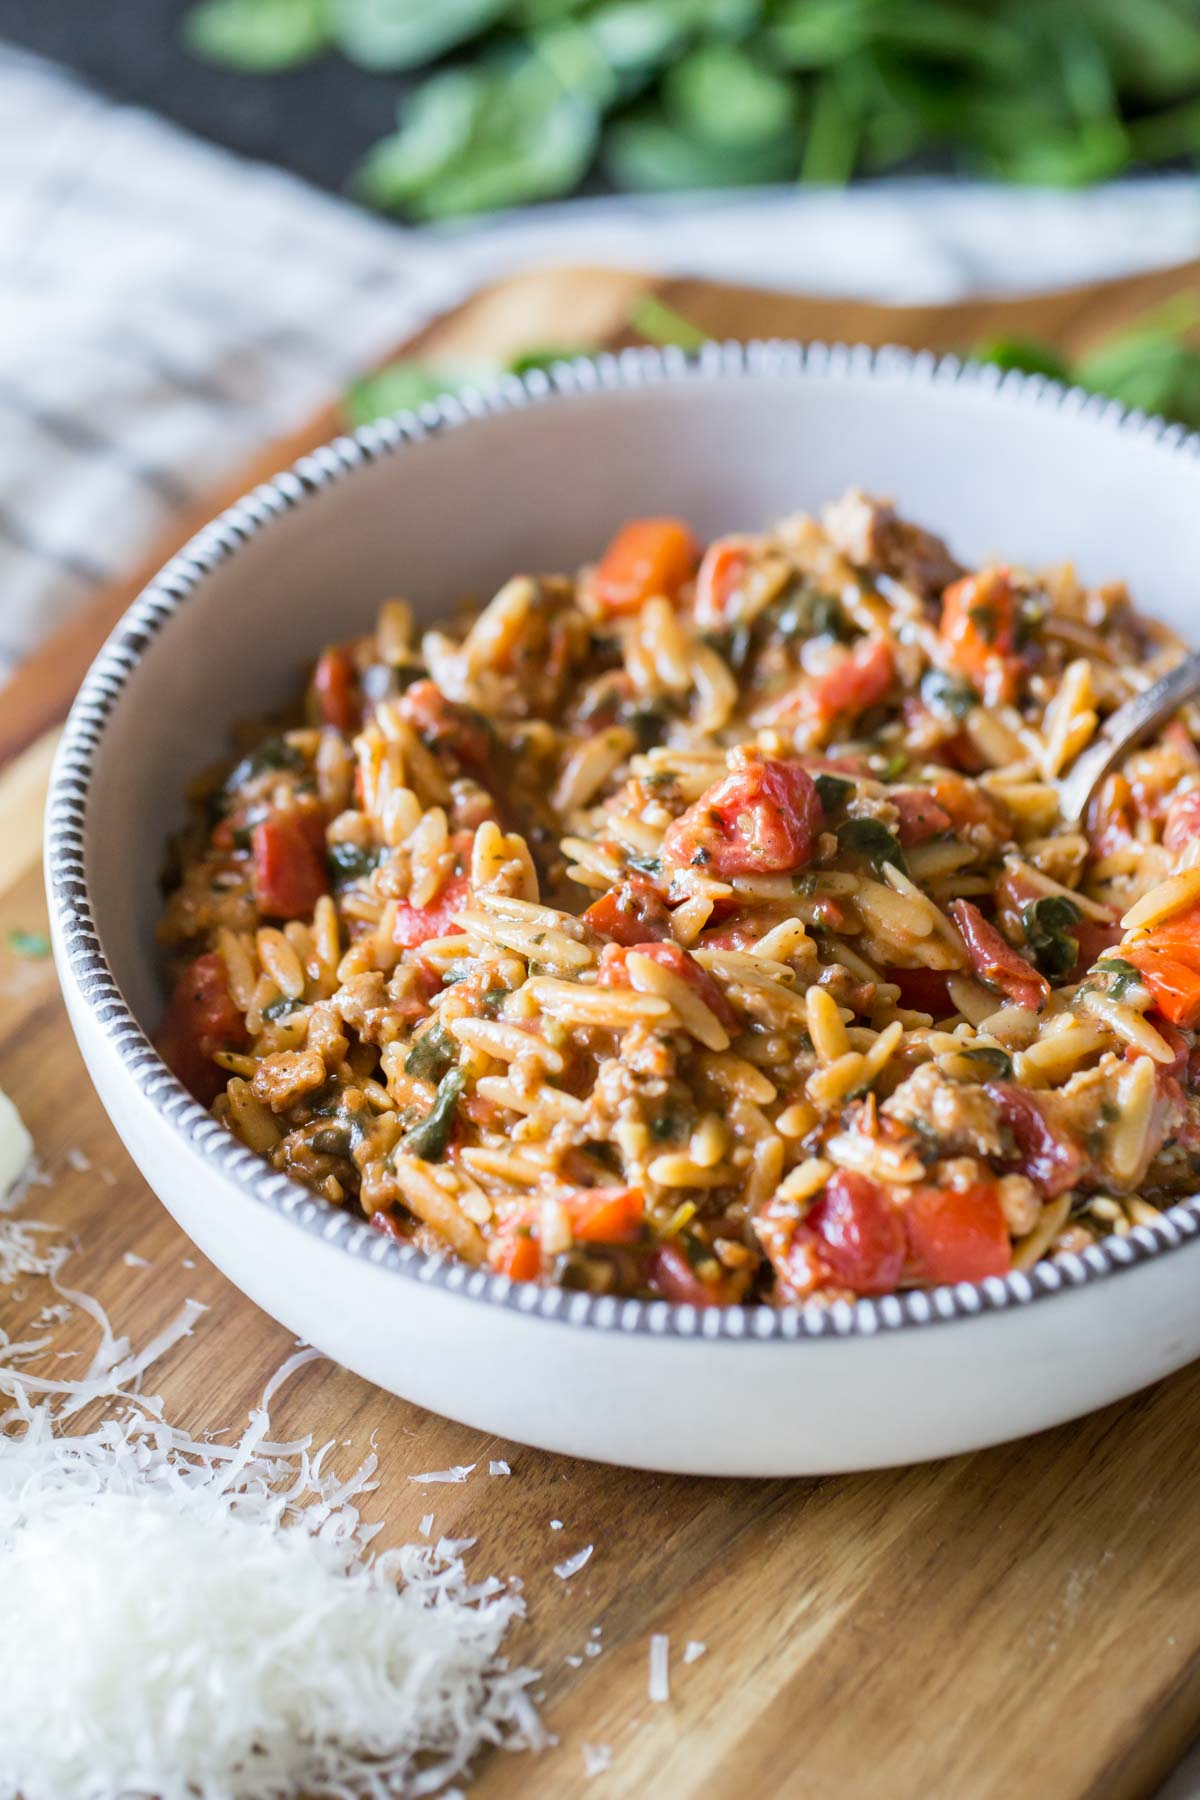 One Pot Creamy Tomato Orzo in a bowl, sitting on a board with some freshly grated parmesan cheese and some baby spinach.